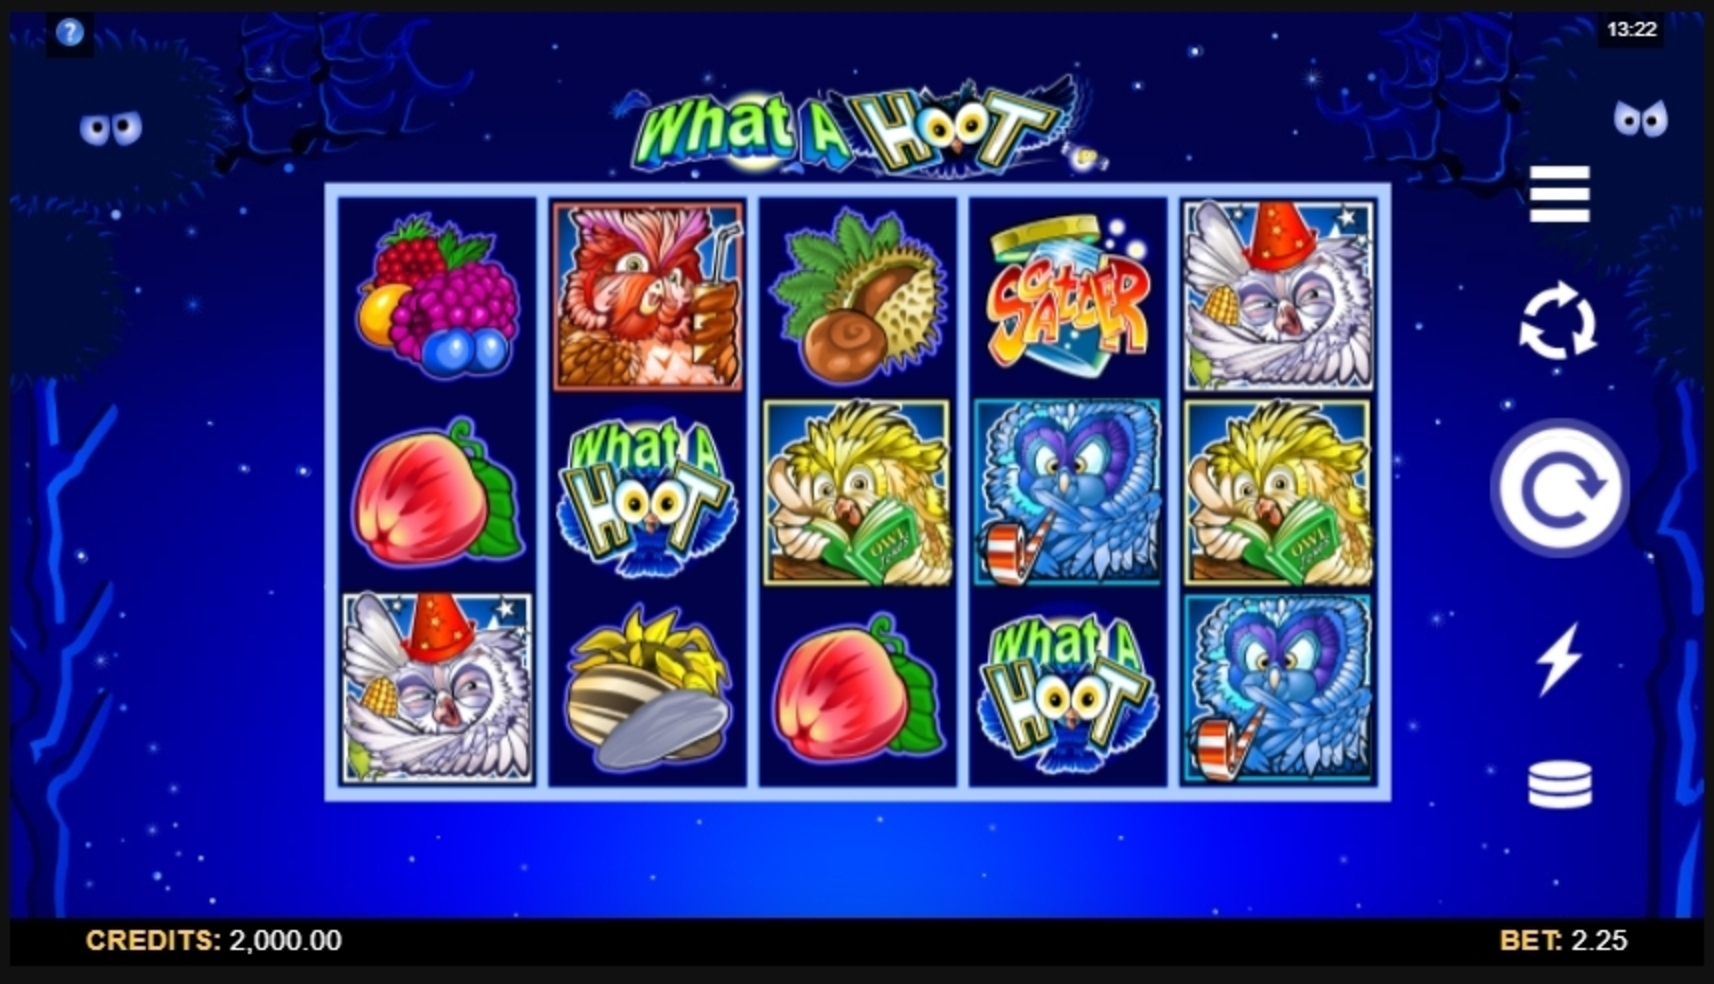 Reels in What a Hoot Slot Game by Microgaming